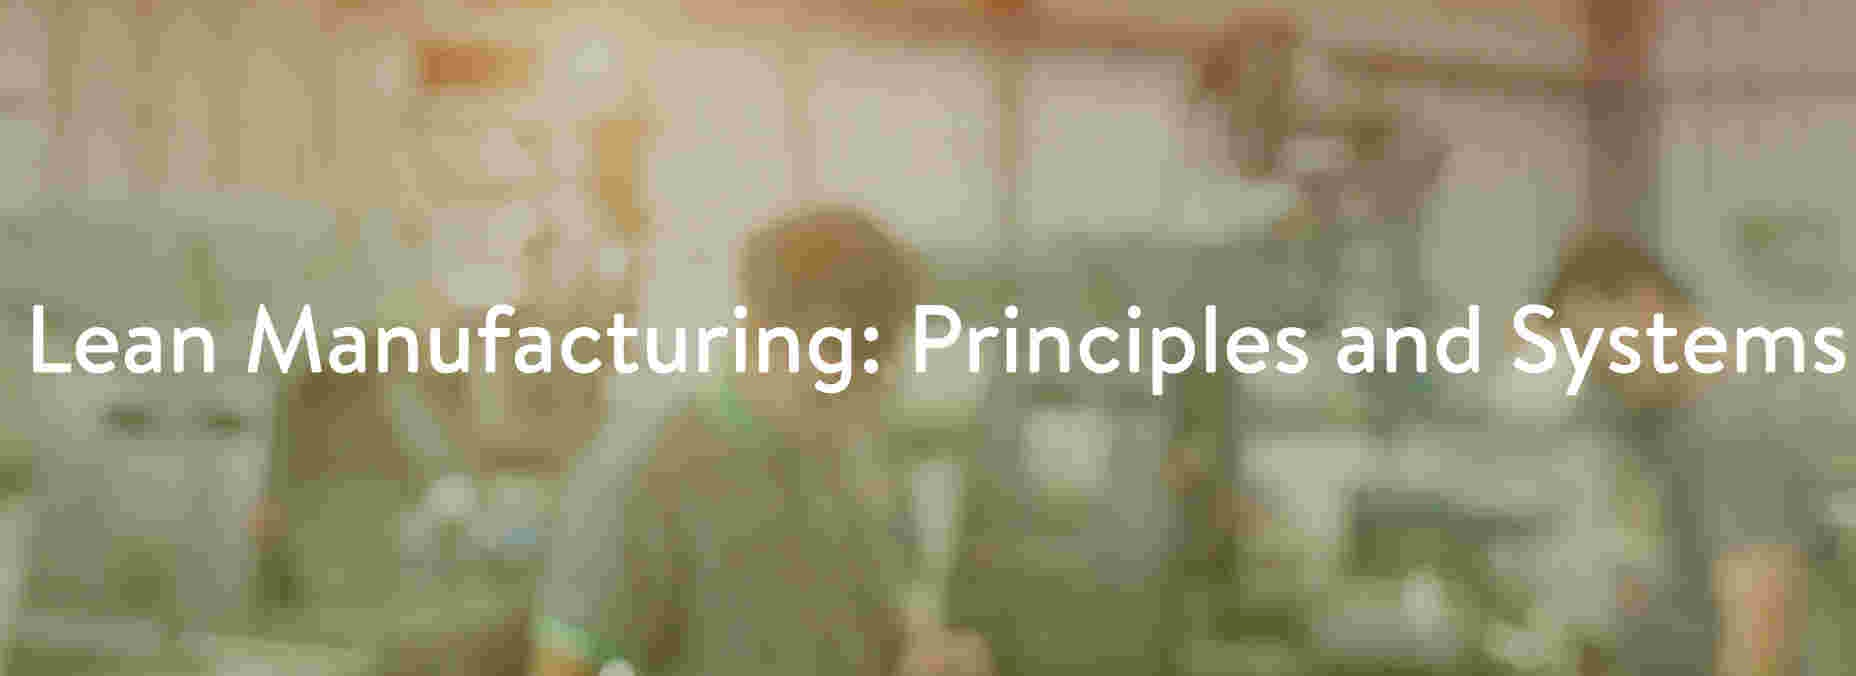 Lean Manufacturing: Principles and Systems